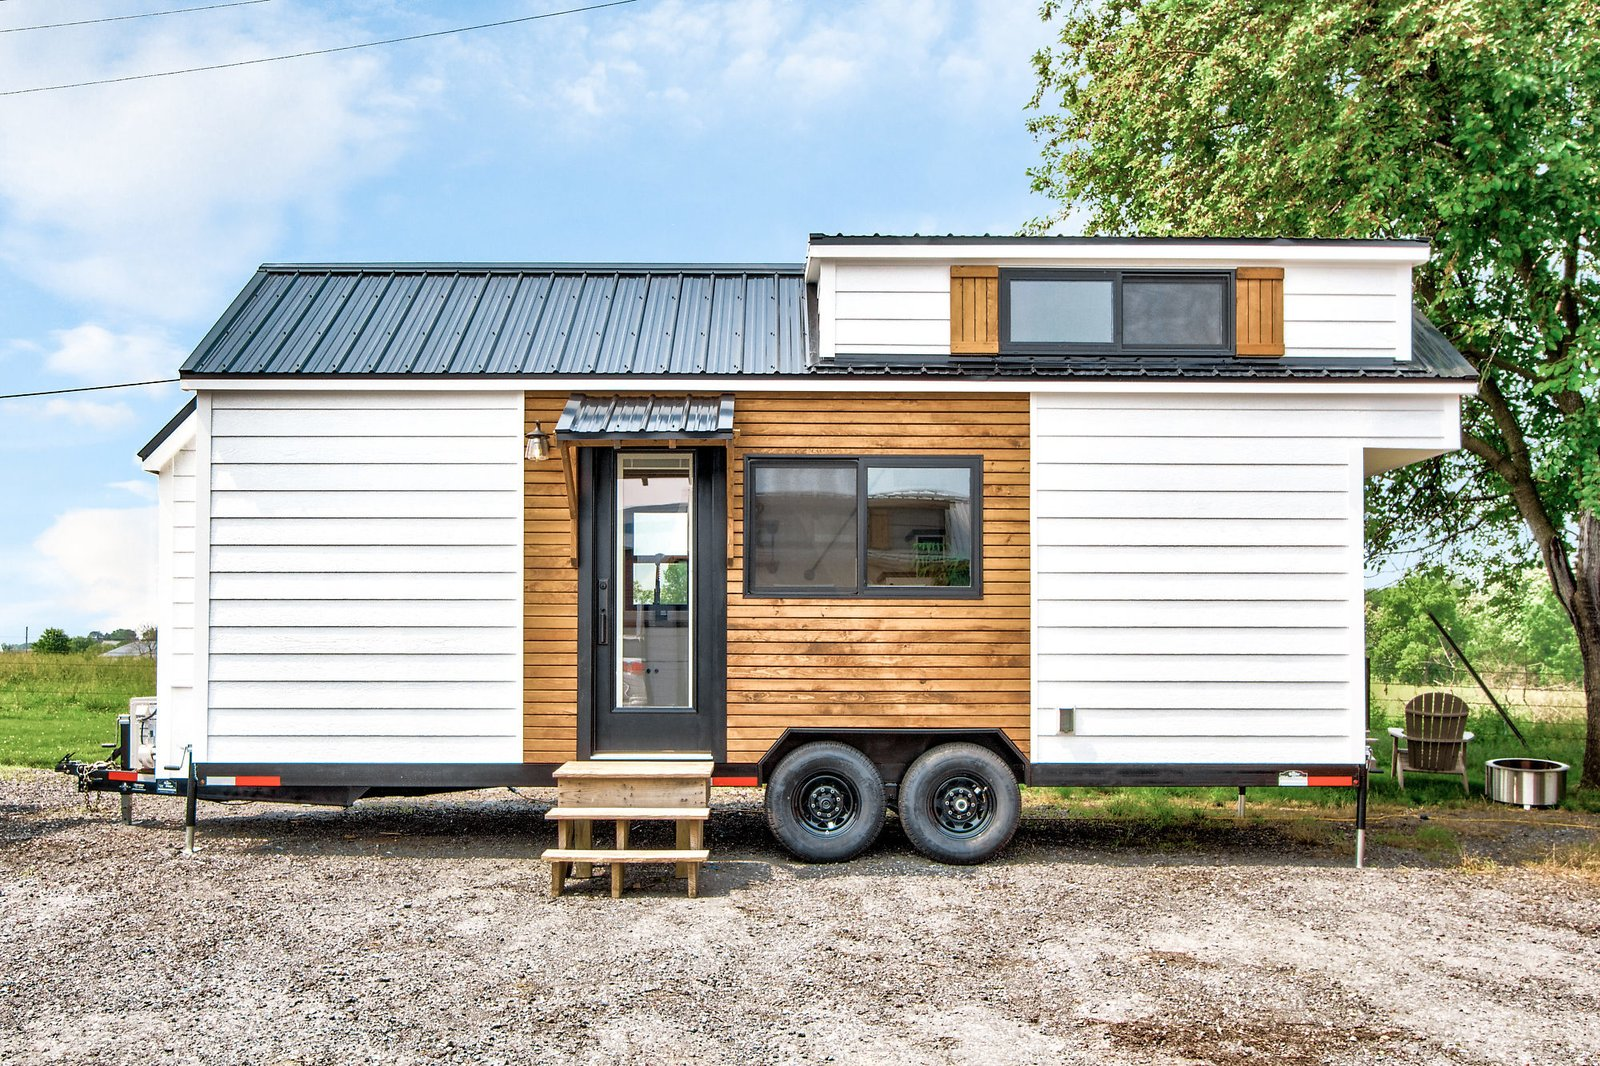 The Rumspringa is clad with wood siding and a galvanized metal roof.